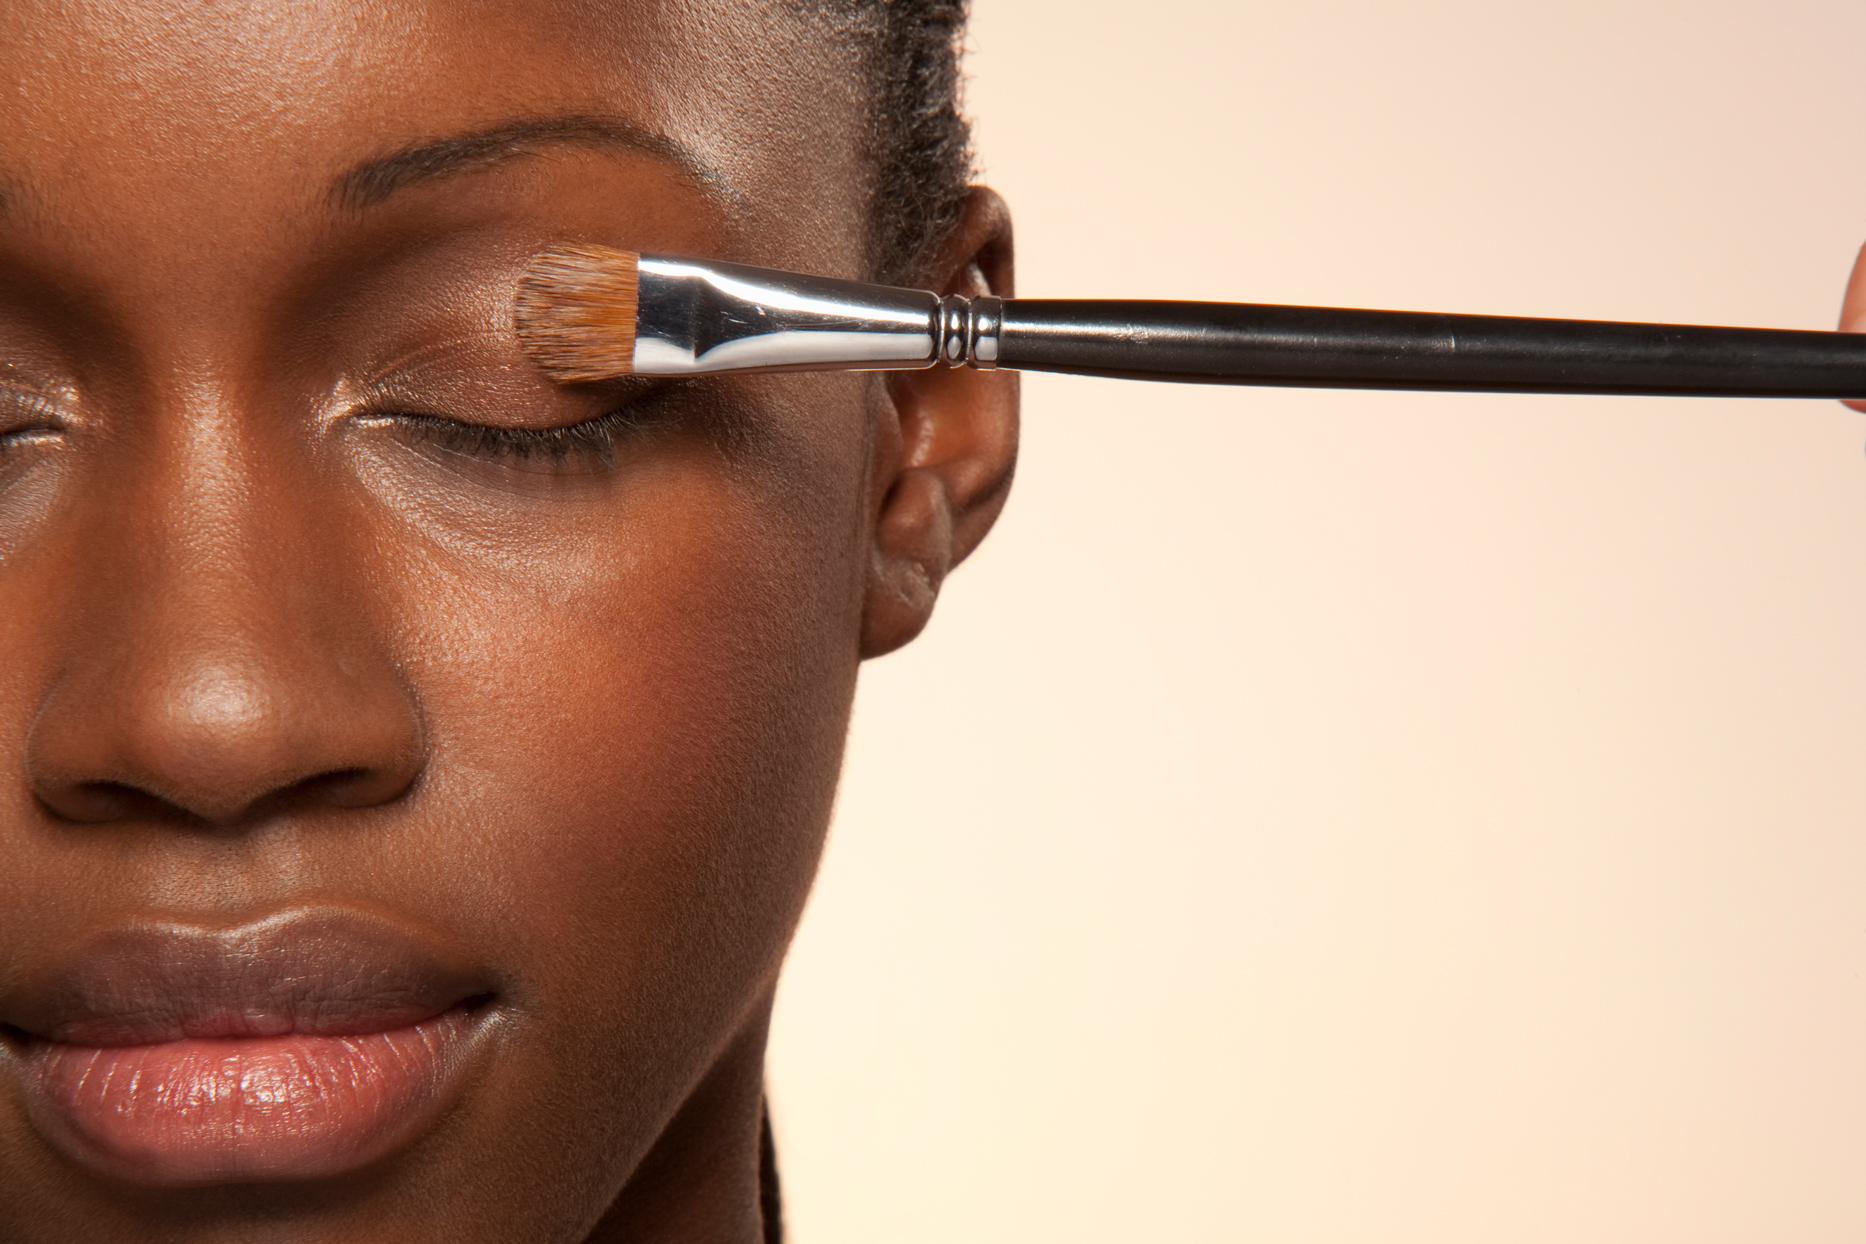 person applying eyeshadow primer with small black handle makeup brush